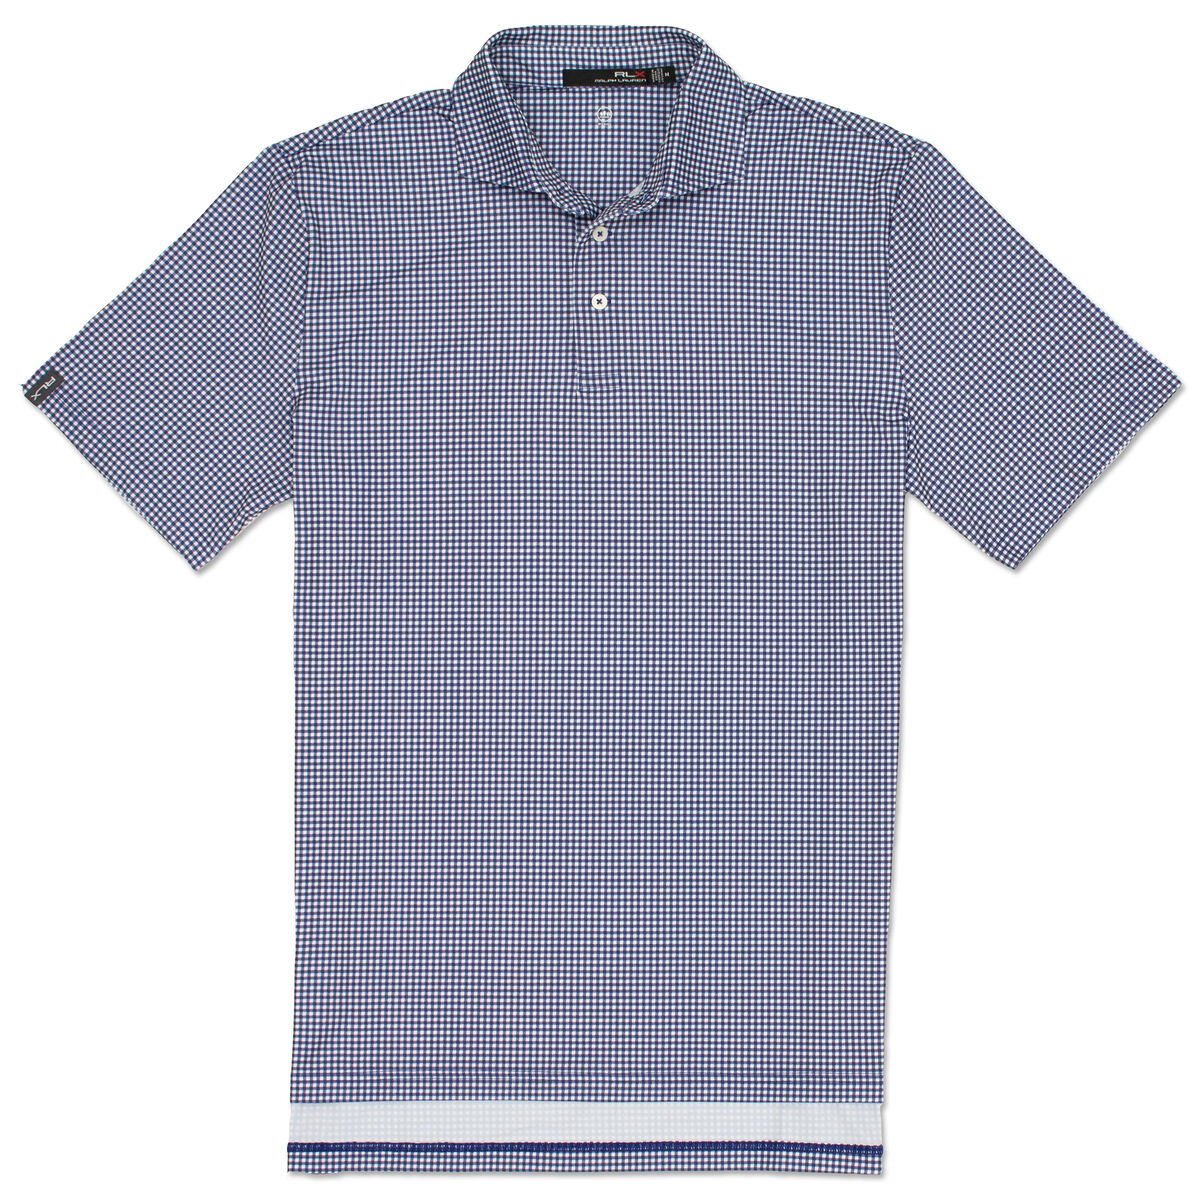 a62dad5f Polo Golf Boys Printed Gingham Lightweight Airflow Polo | PGA TOUR ...